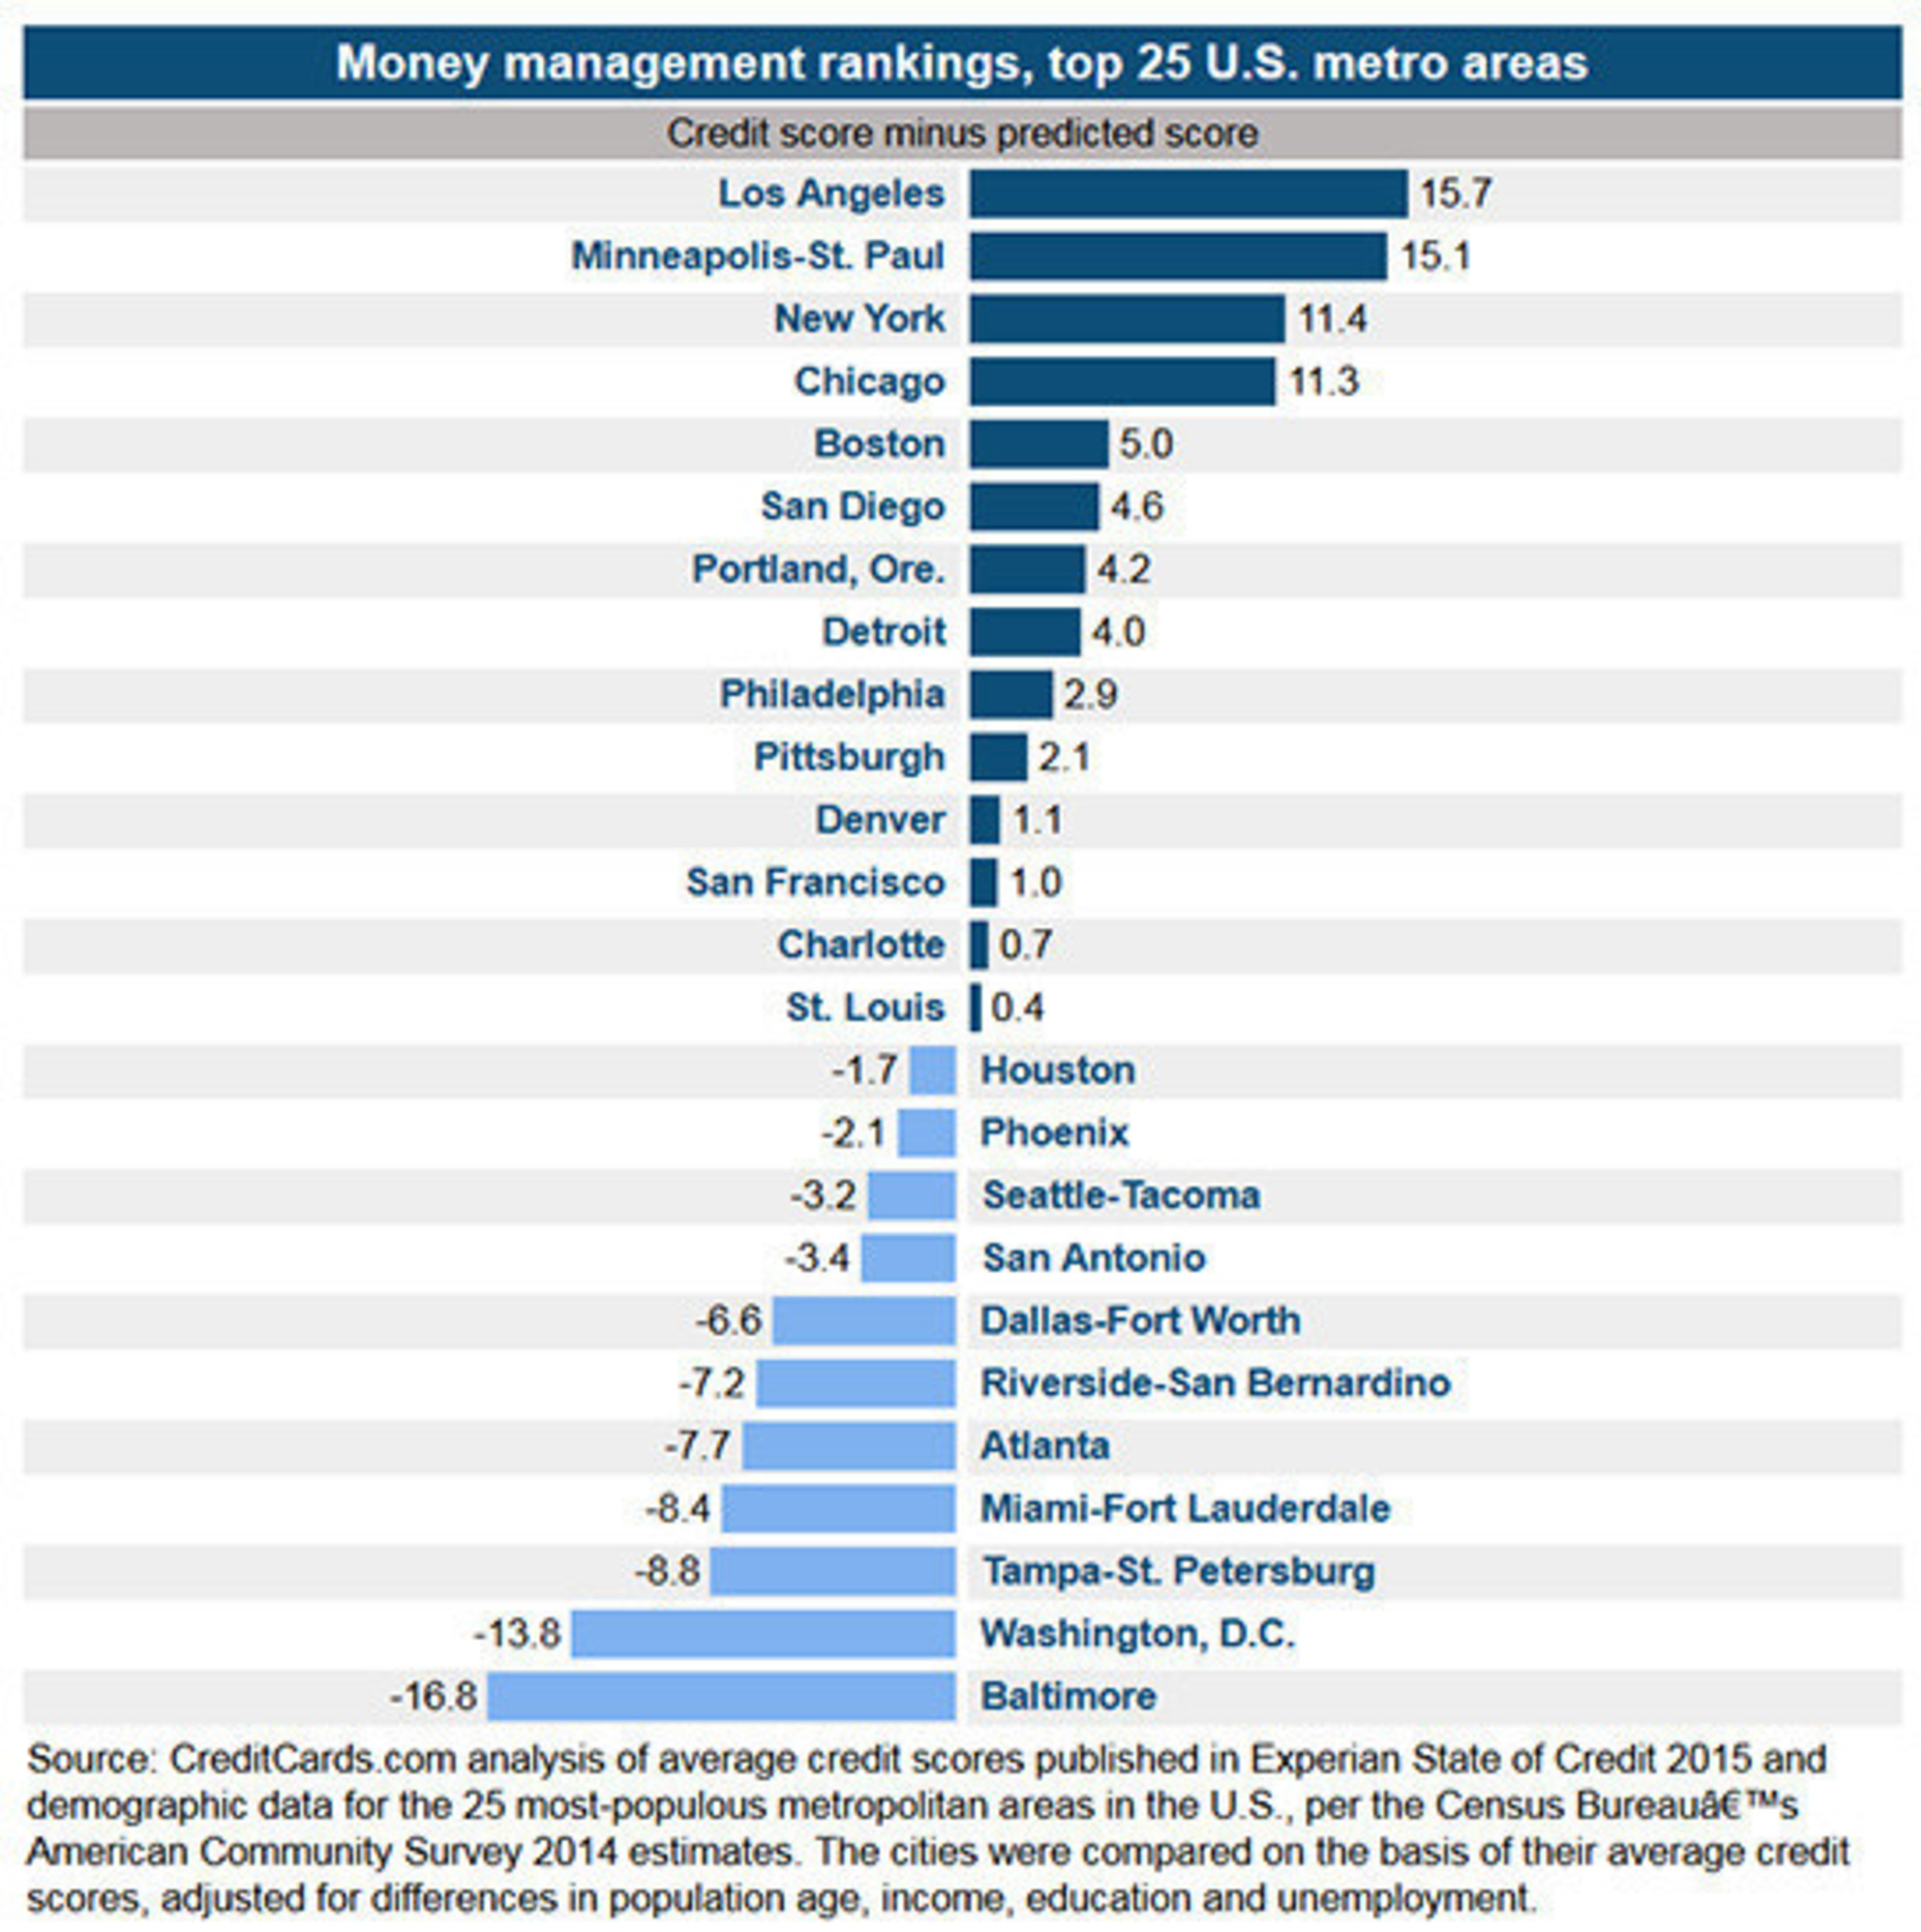 Los Angeles Metro Area Residents Are The Best At Managing Money And Baltimore